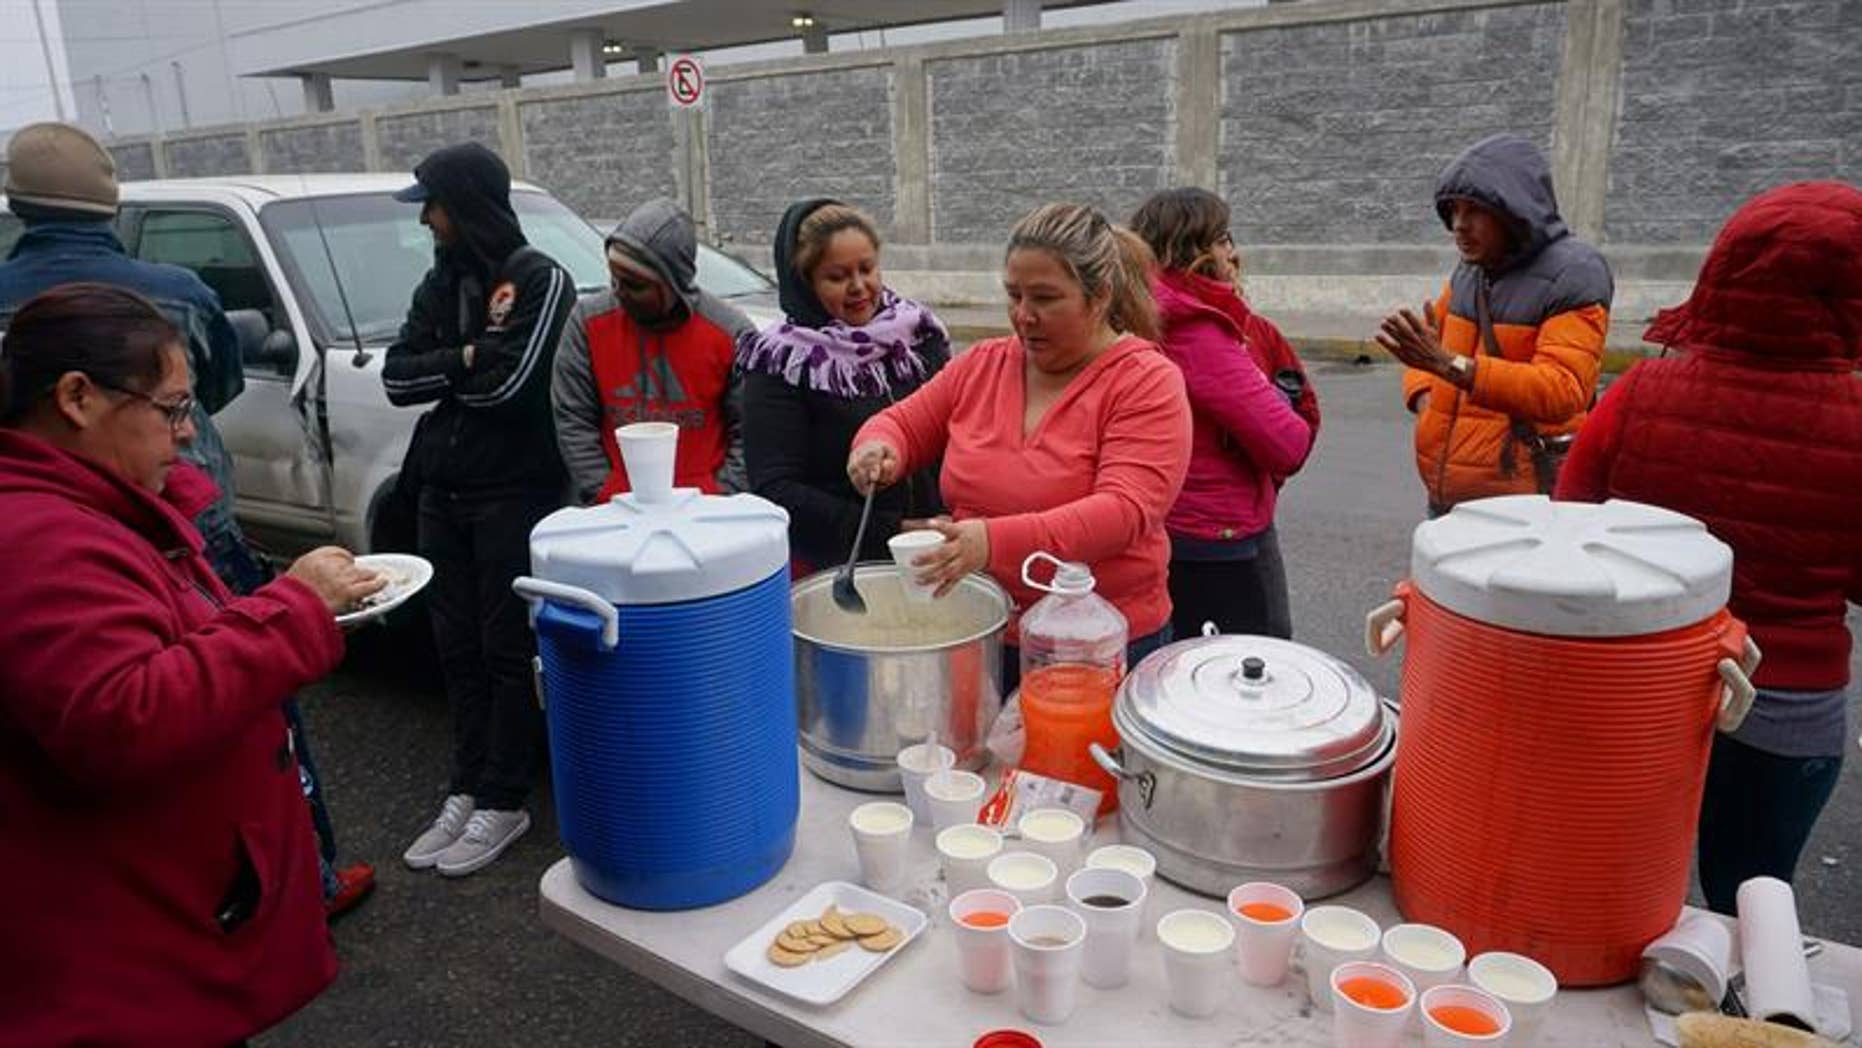 Cuban citizens are fed by locals as they wait in the border line at Nuevo Laredo, Mexico, Jan. 30, 2017.